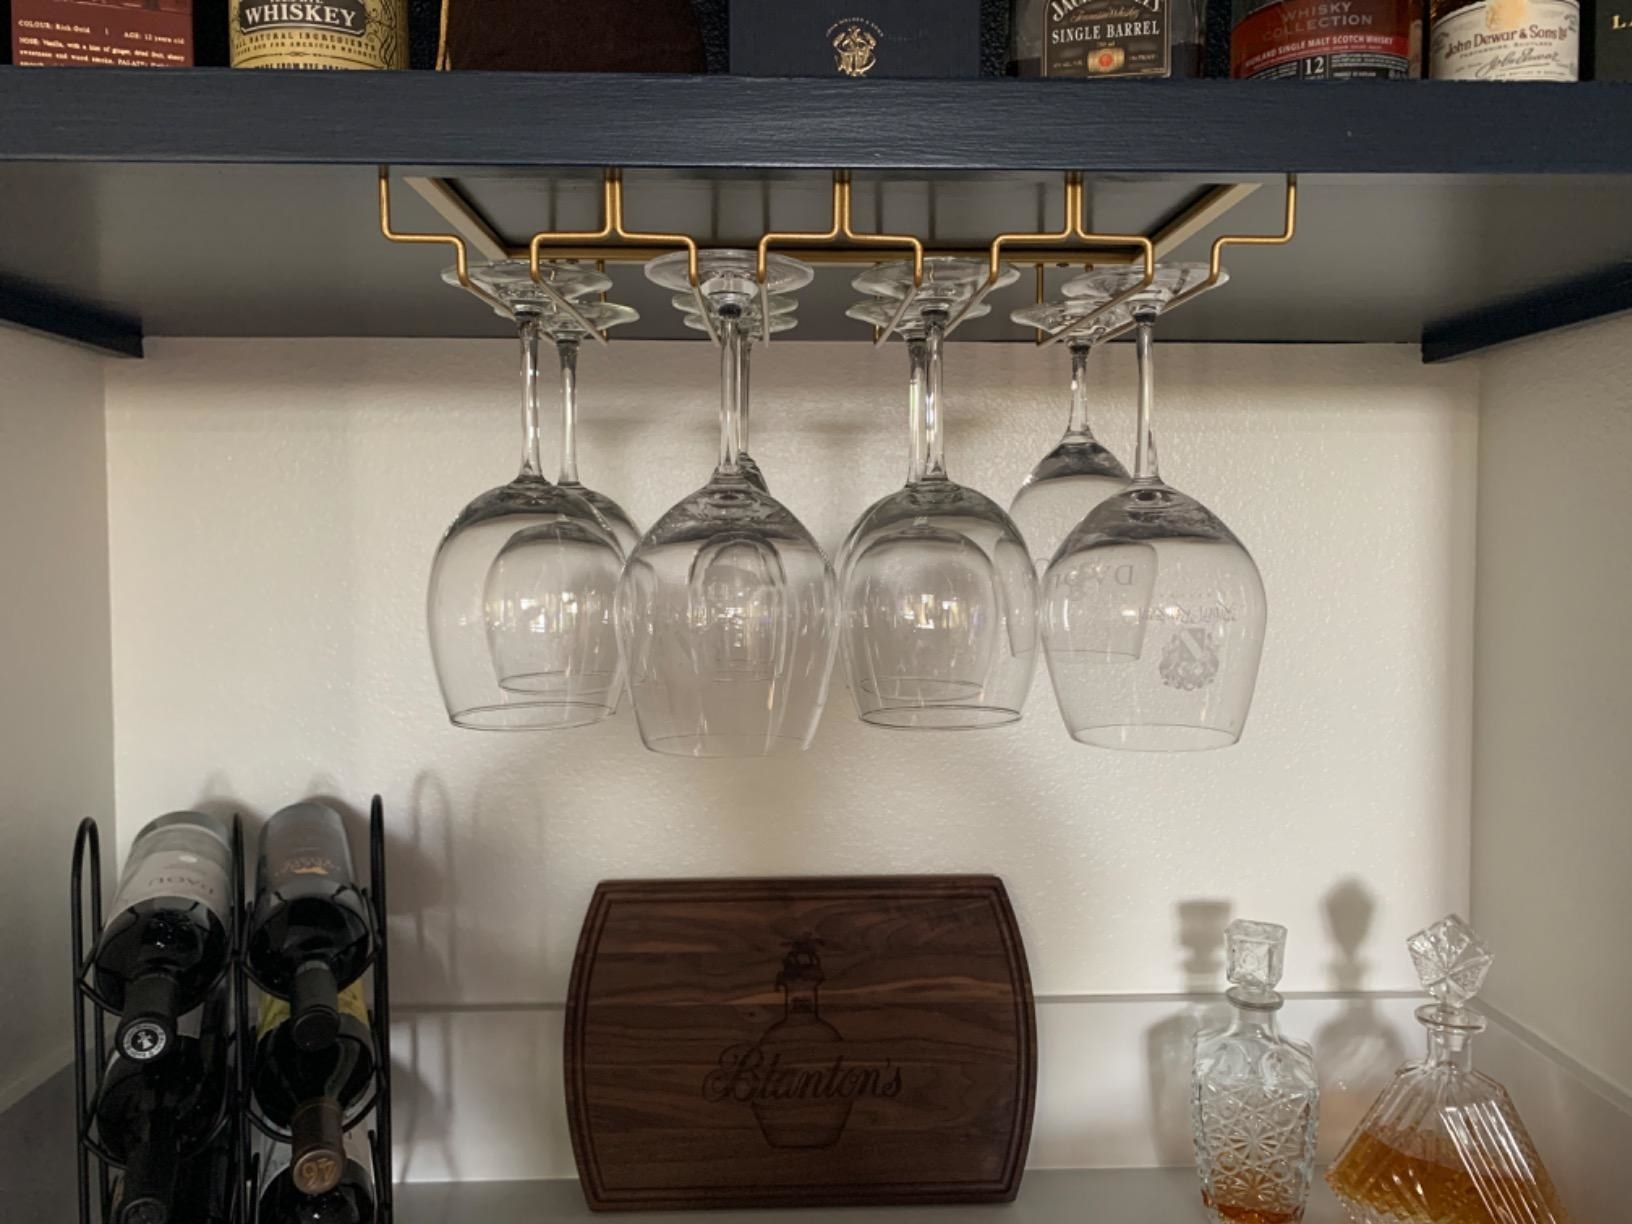 A reviewer's photo of a gold stemware organizer holding eight wine glasses